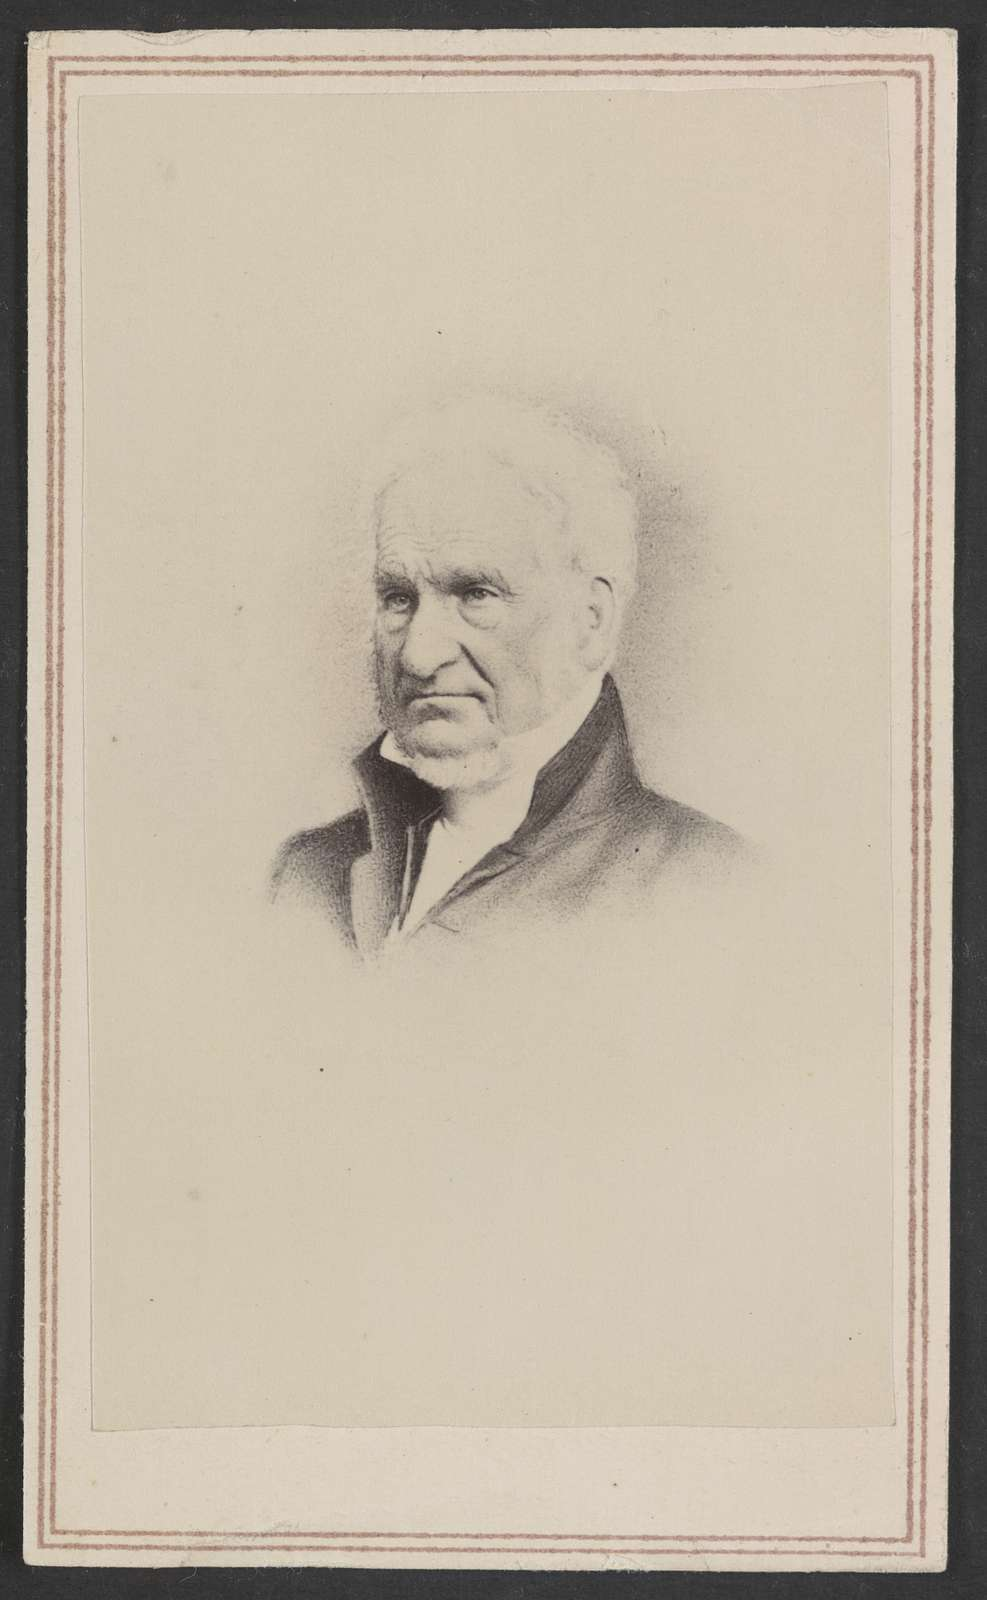 [Eliphalet Nott, president of Union College] / C. A. M. Taber, 99 State Street, Schenectady, N.Y.